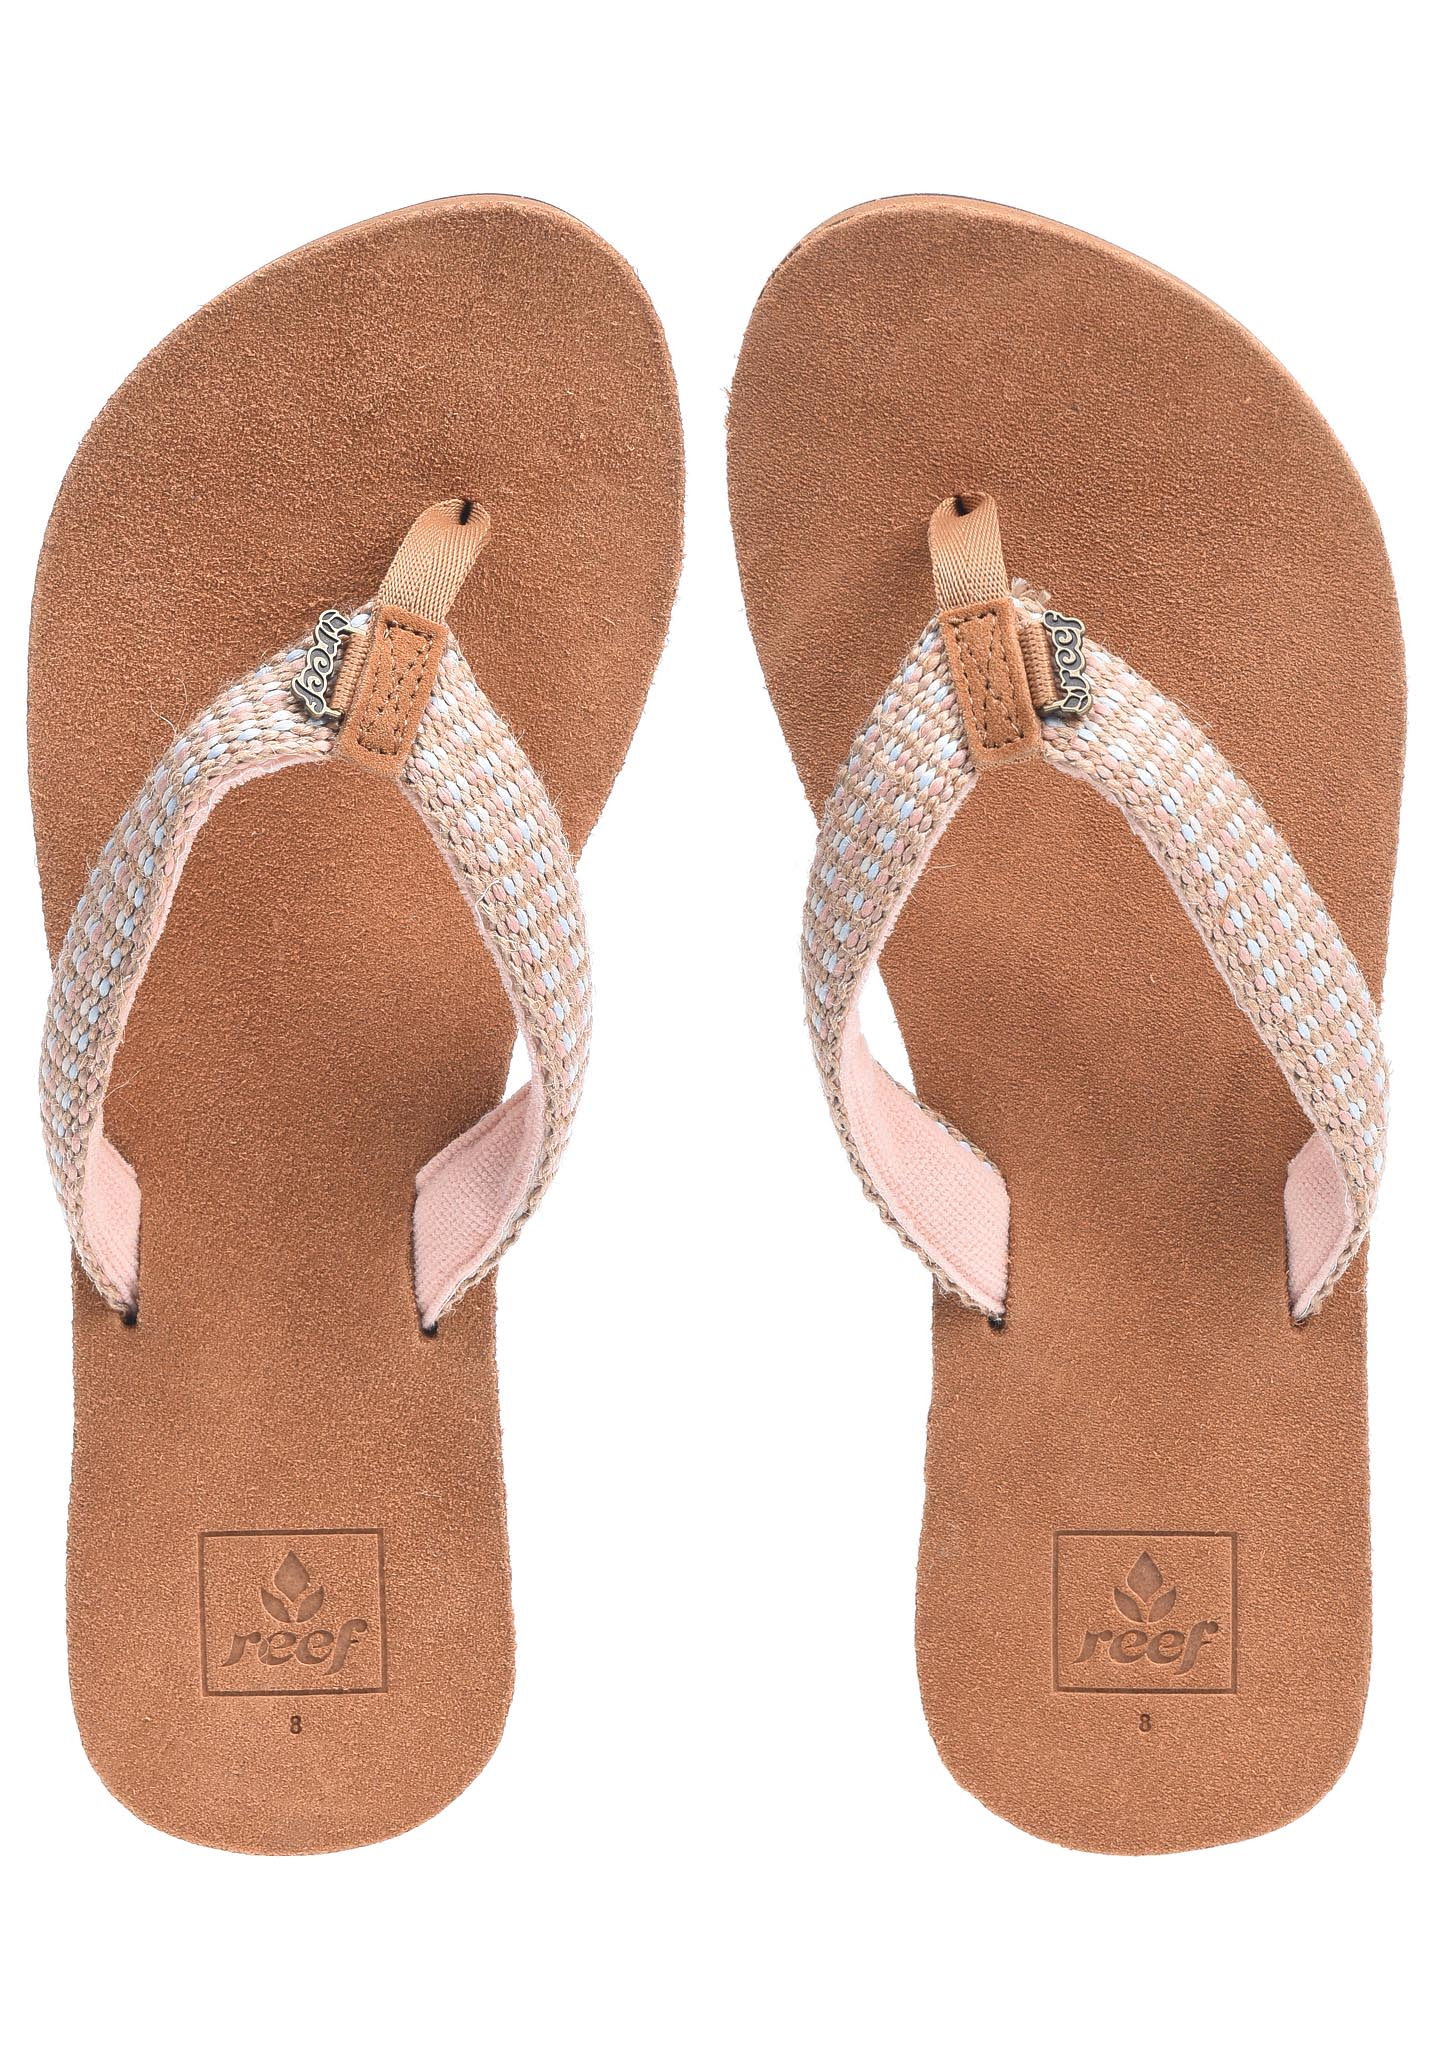 8721bb85a483 Reef Gypsylove - Sandals for Women - Beige - Planet Sports